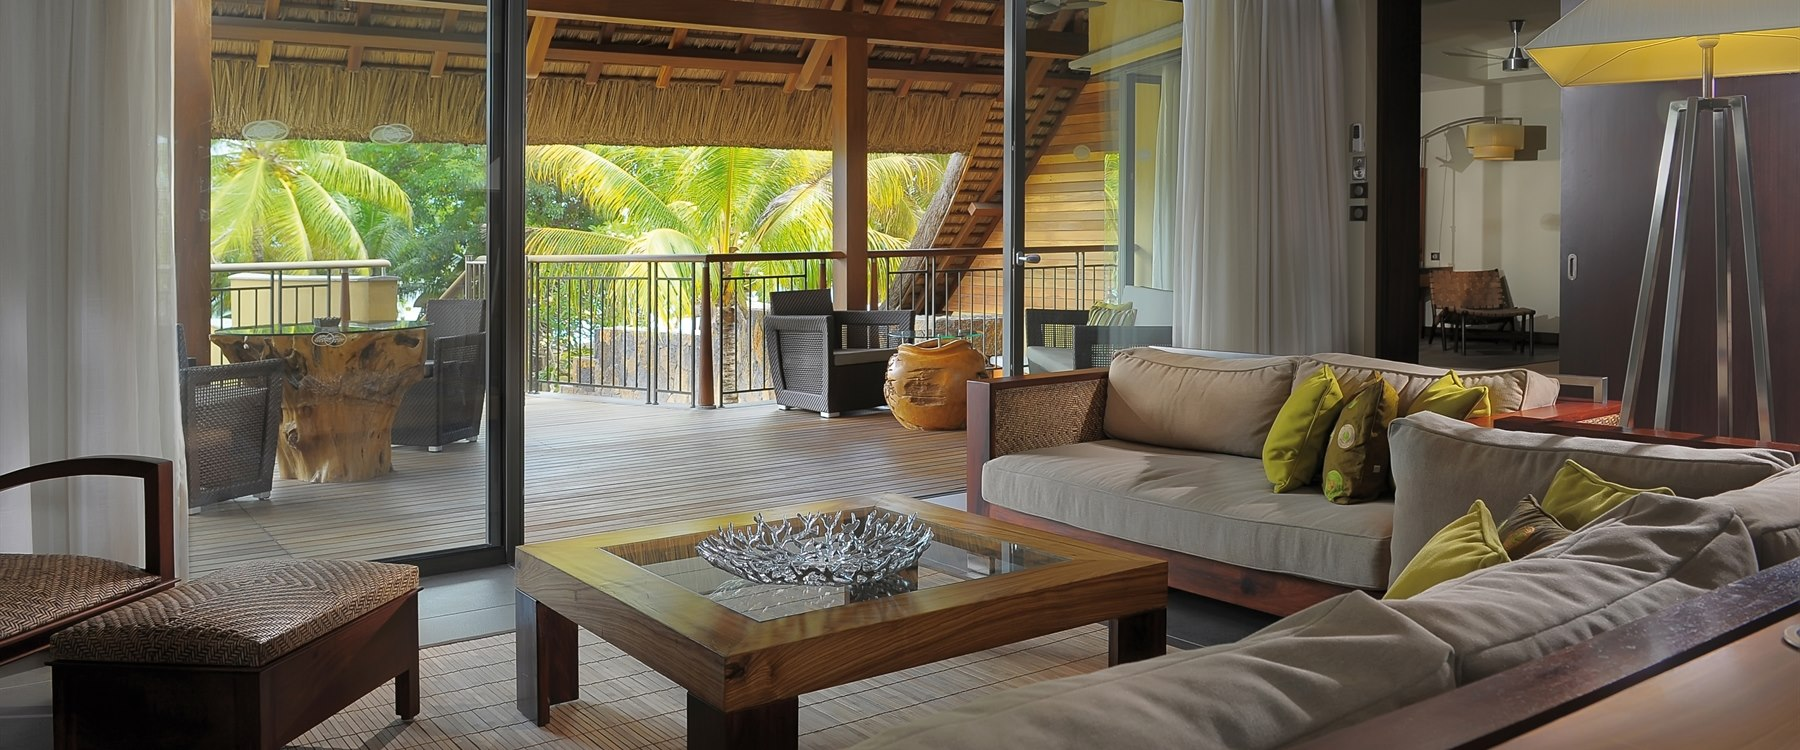 Villa living area at Trou Aux Biches Beachcomber Golf Resort & Spa, Mauritius